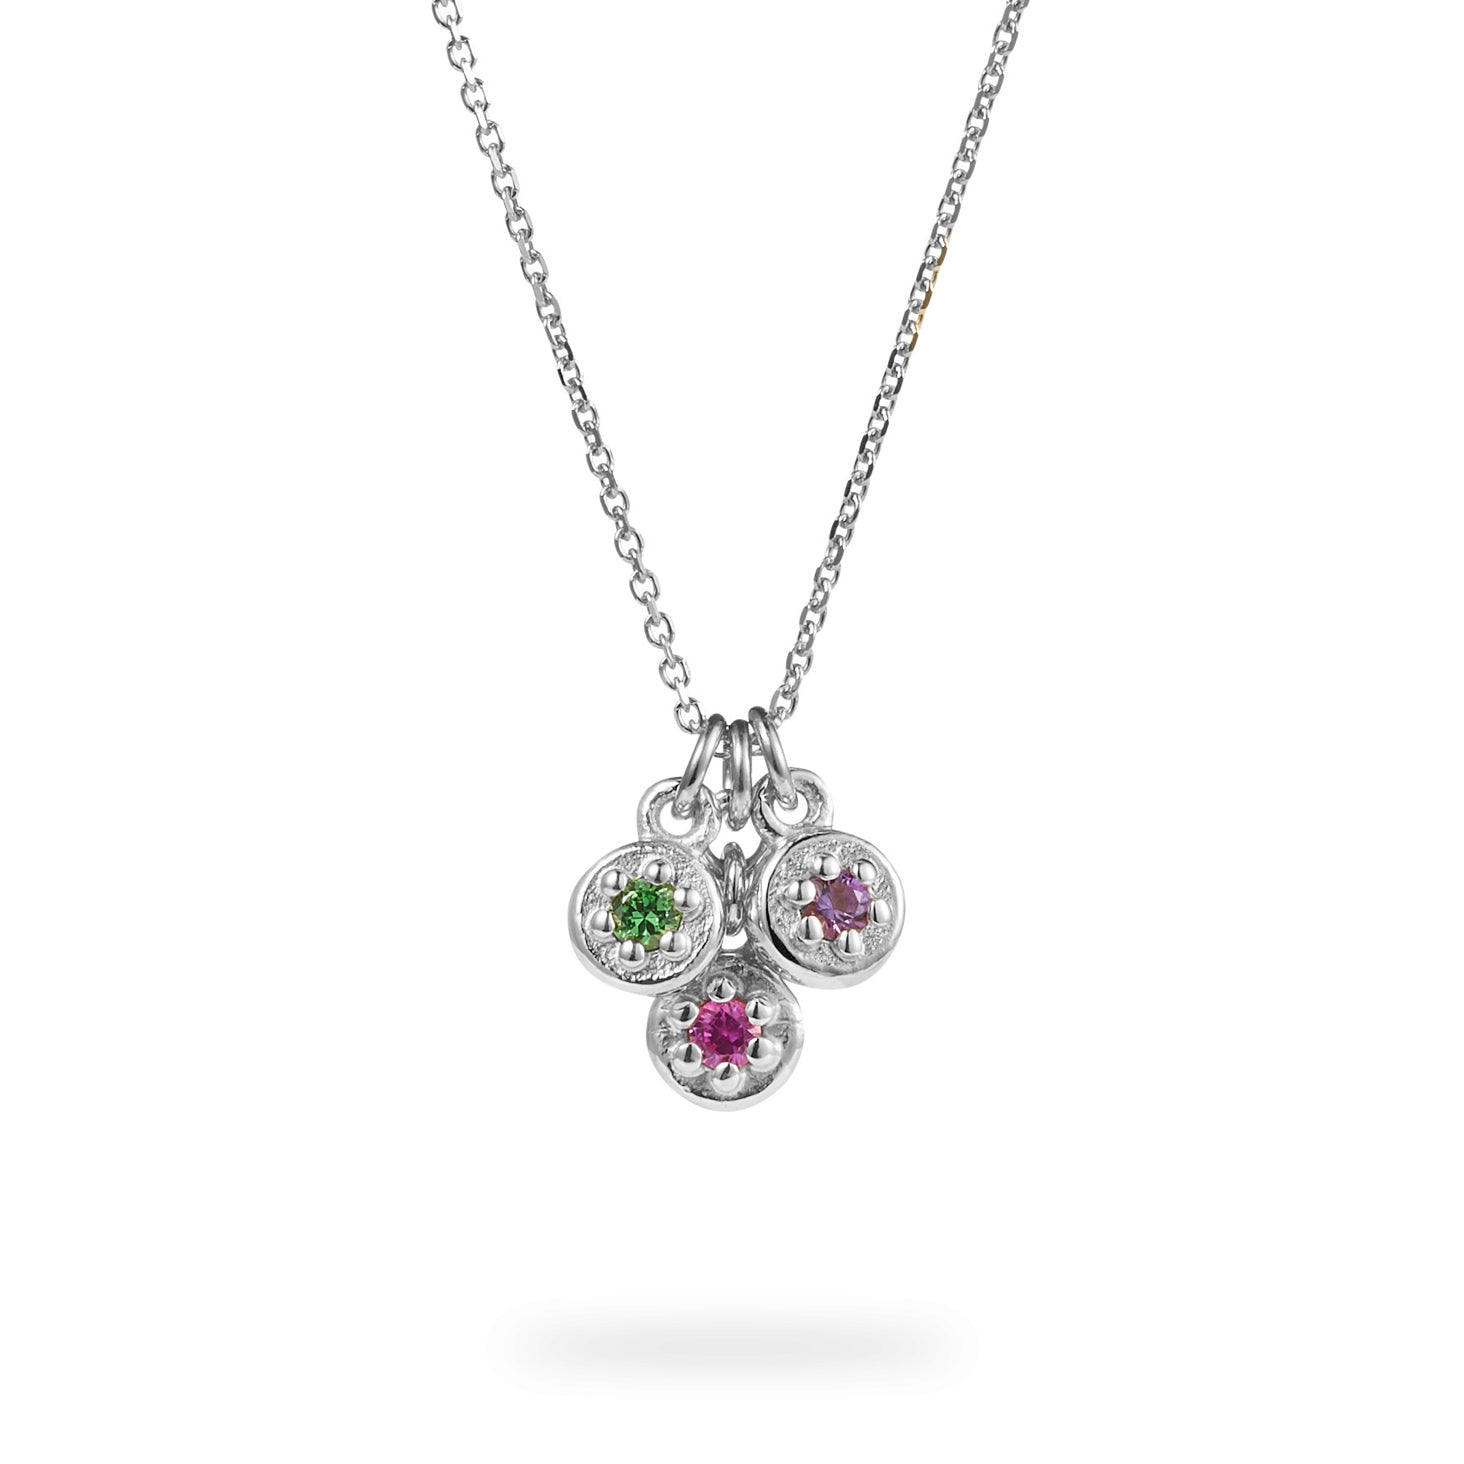 Luke Rose Jewellery silver 3 stone poppy rock necklace